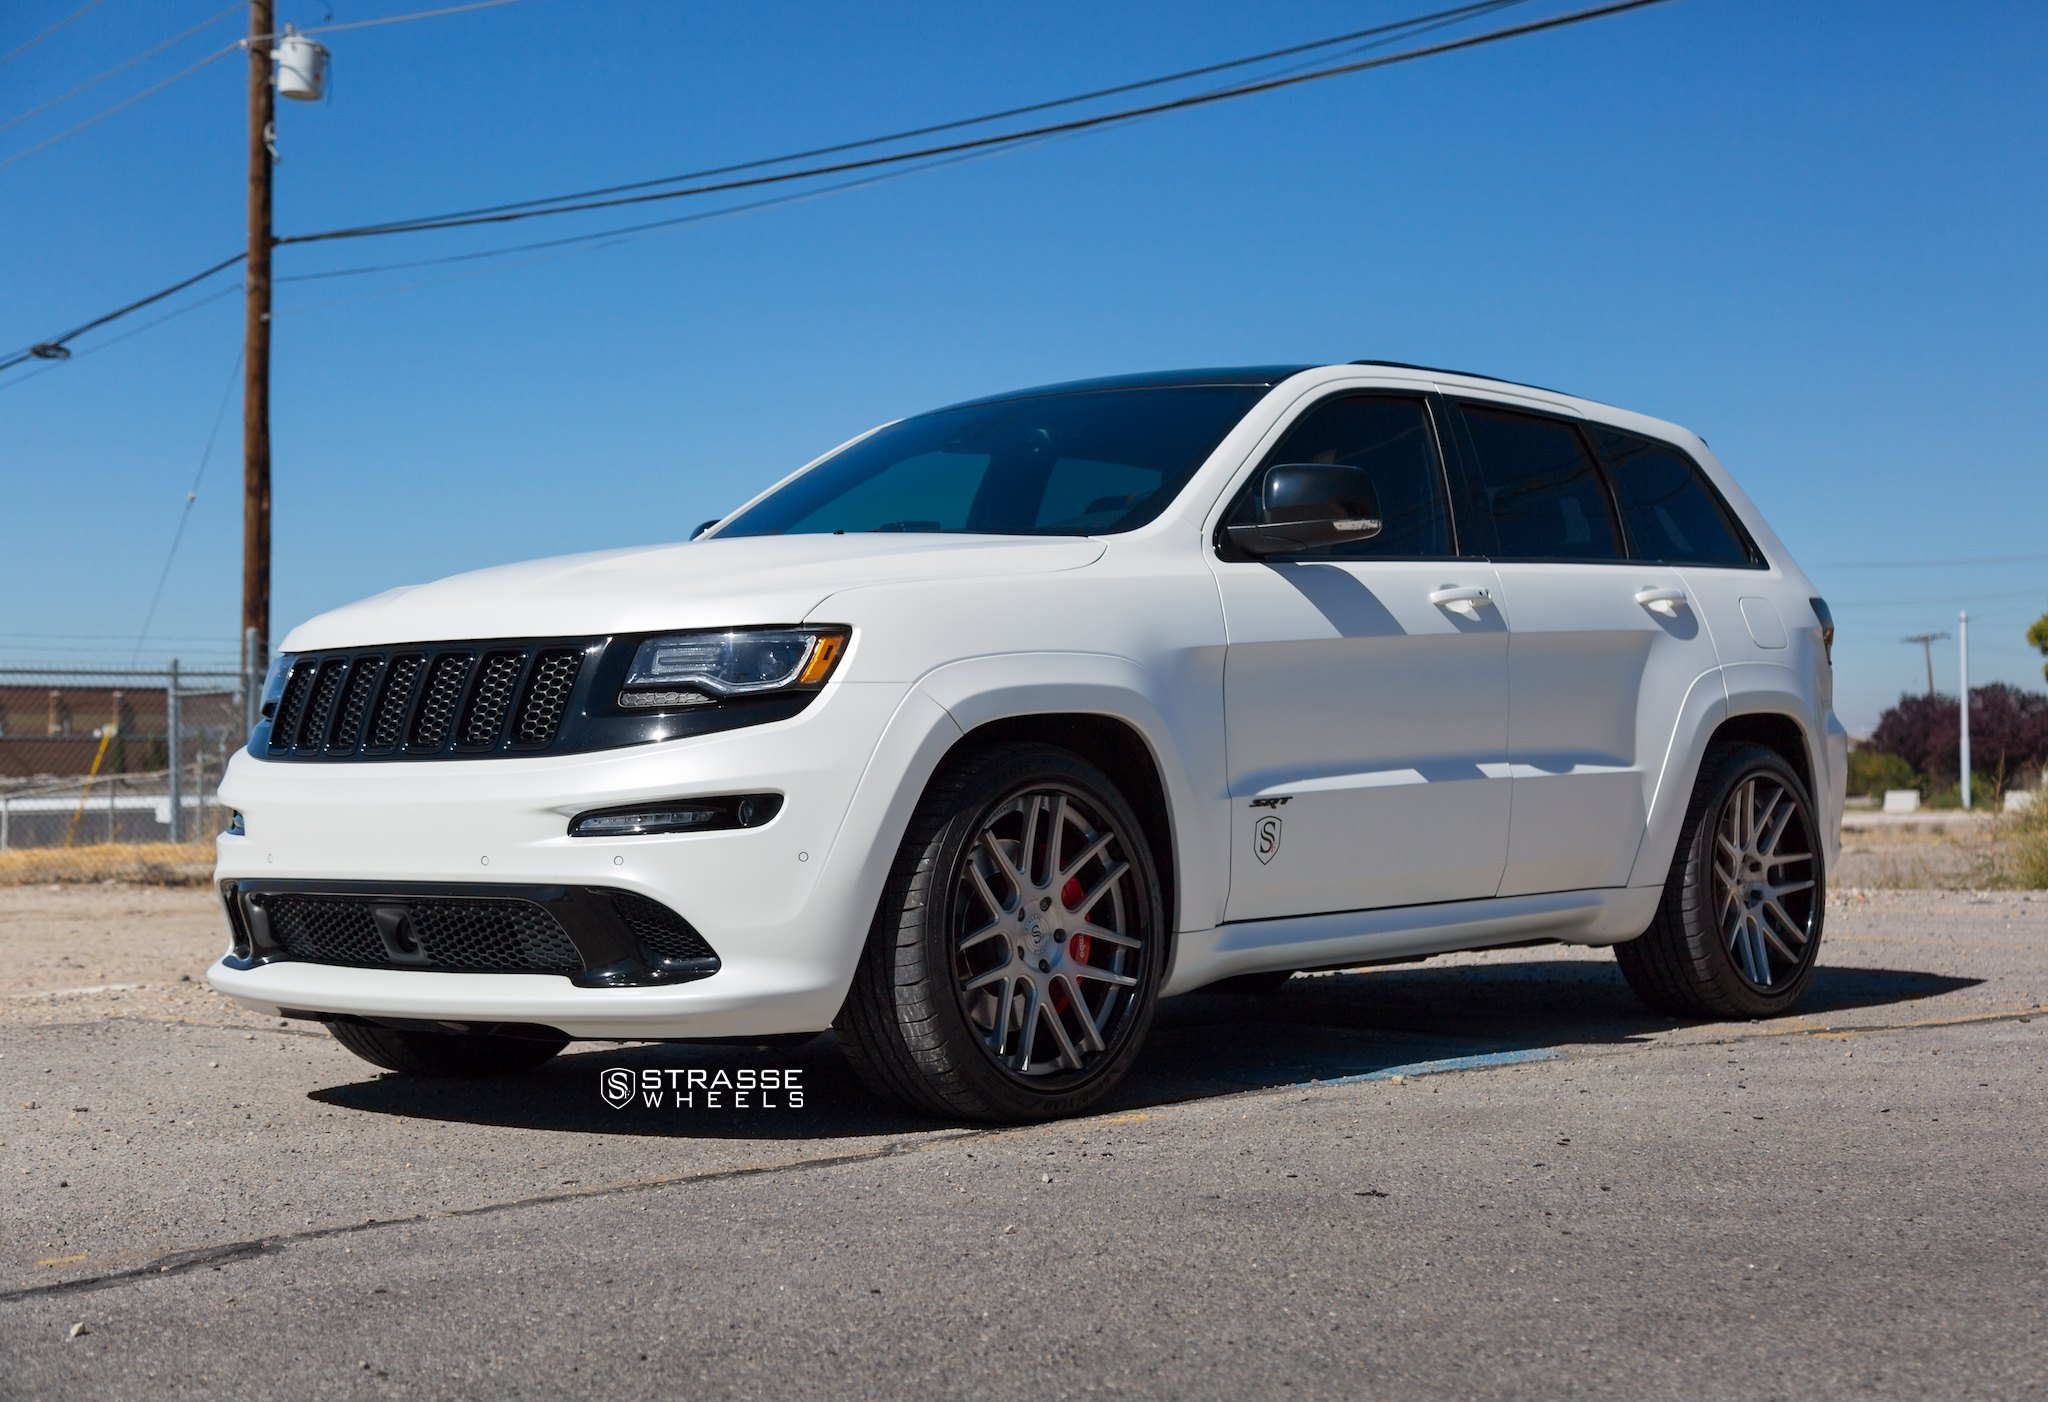 proper neat tuning for white jeep grand cherokee carid. Black Bedroom Furniture Sets. Home Design Ideas